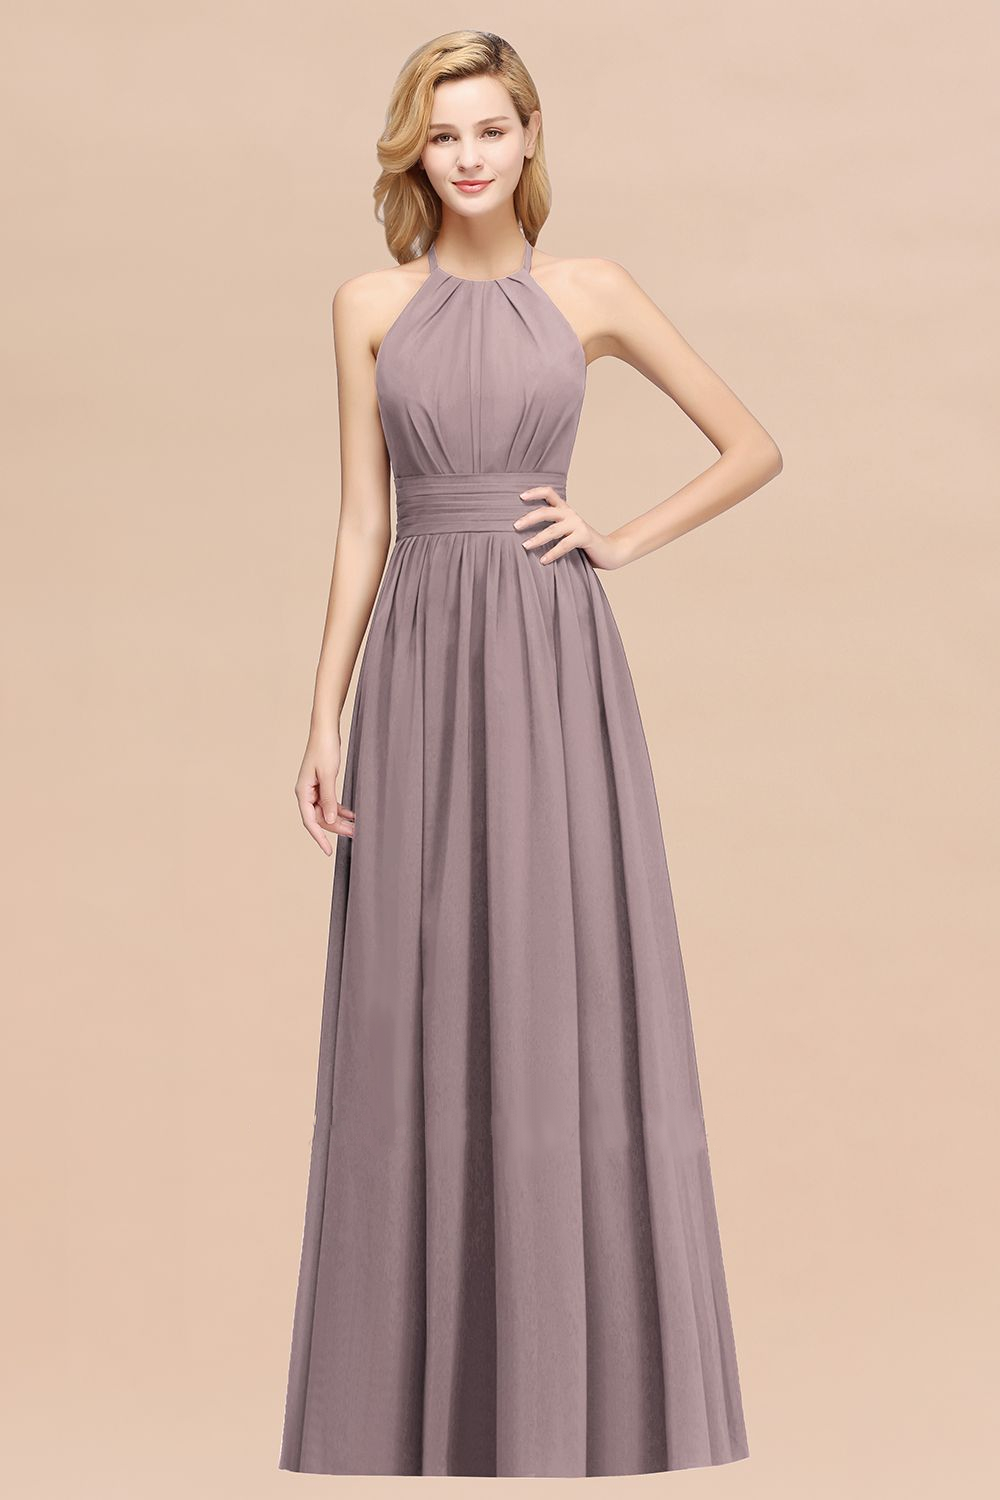 dusk bridesmaids dress for wine and chocolate wedding ceremony